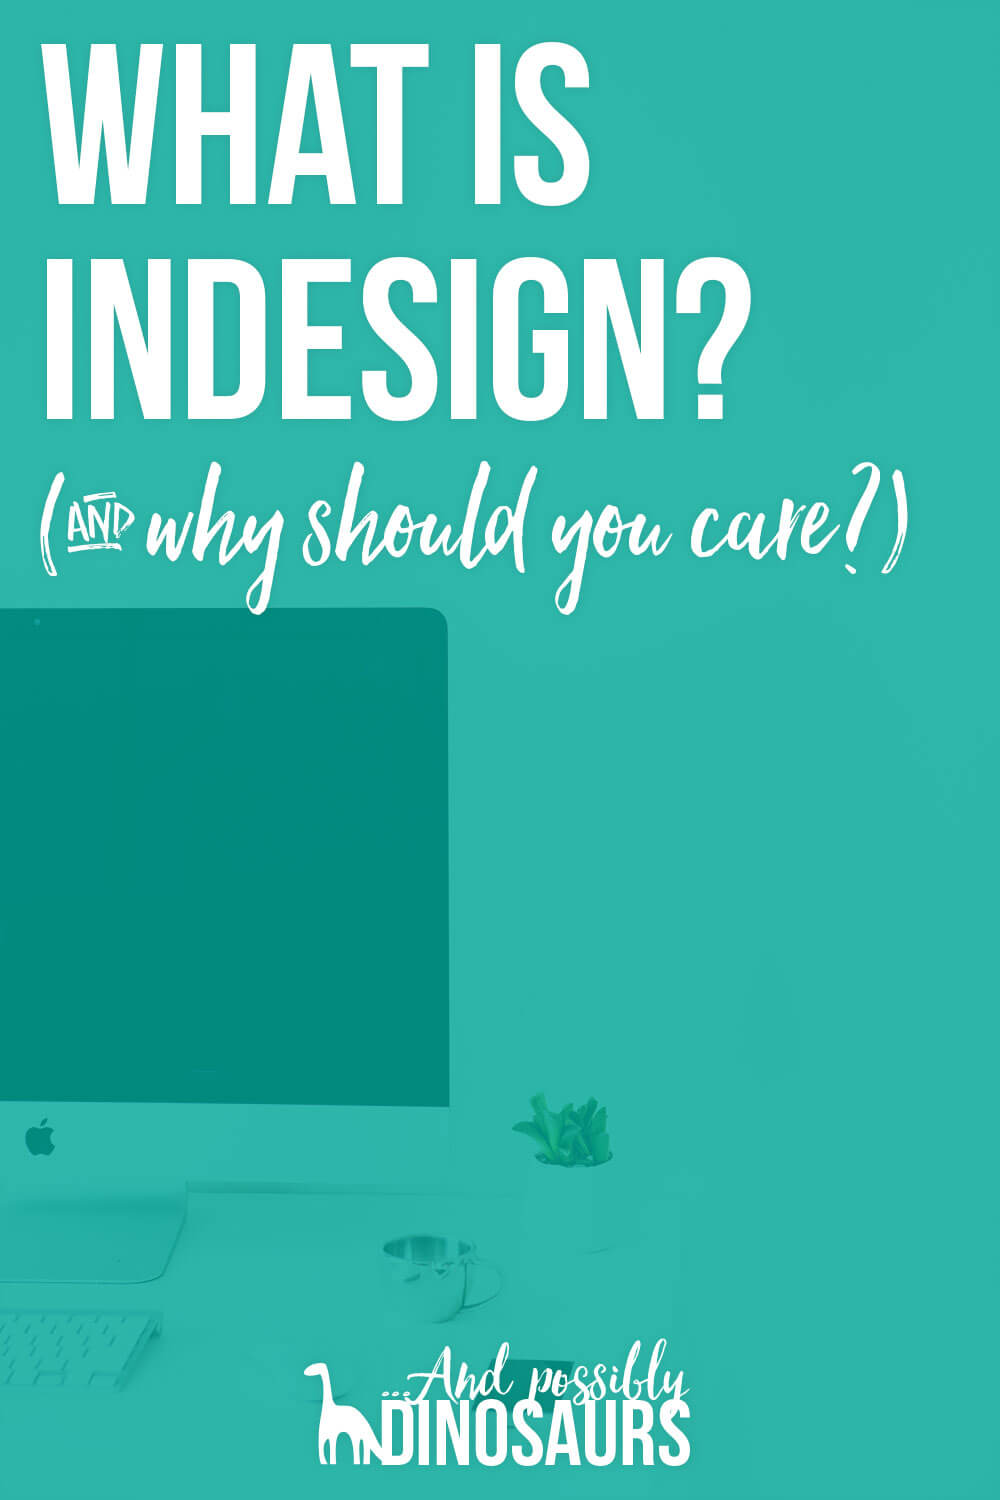 You've heard of Photoshop. But what about its sister program, InDesign? It's a super useful tool for creating things like ebooks, worksheets, and other content upgrades. Find out: what is InDesign and why you should care!